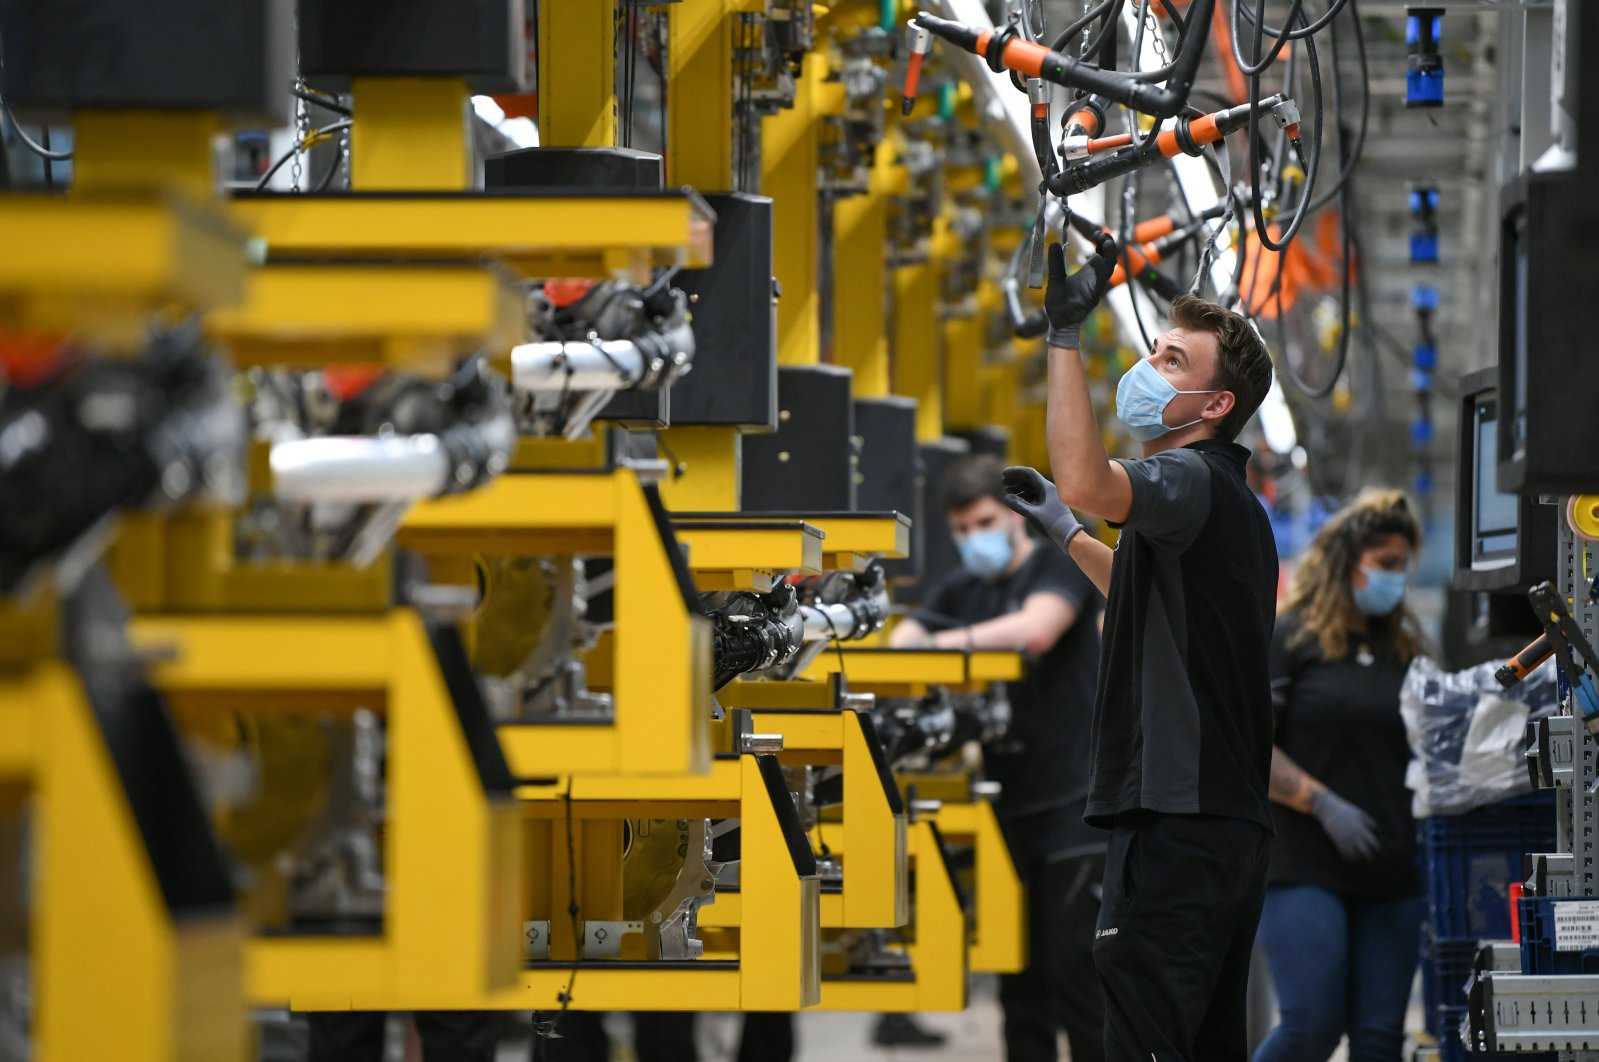 Workers assemble engines for Mercedes-Benz S-class models at the Daimler Powertrain plant in Bad Cannstatt, as the spread of the coronavirus continues near Stuttgart, Germany, April 22, 2020. (Reuters Photo)